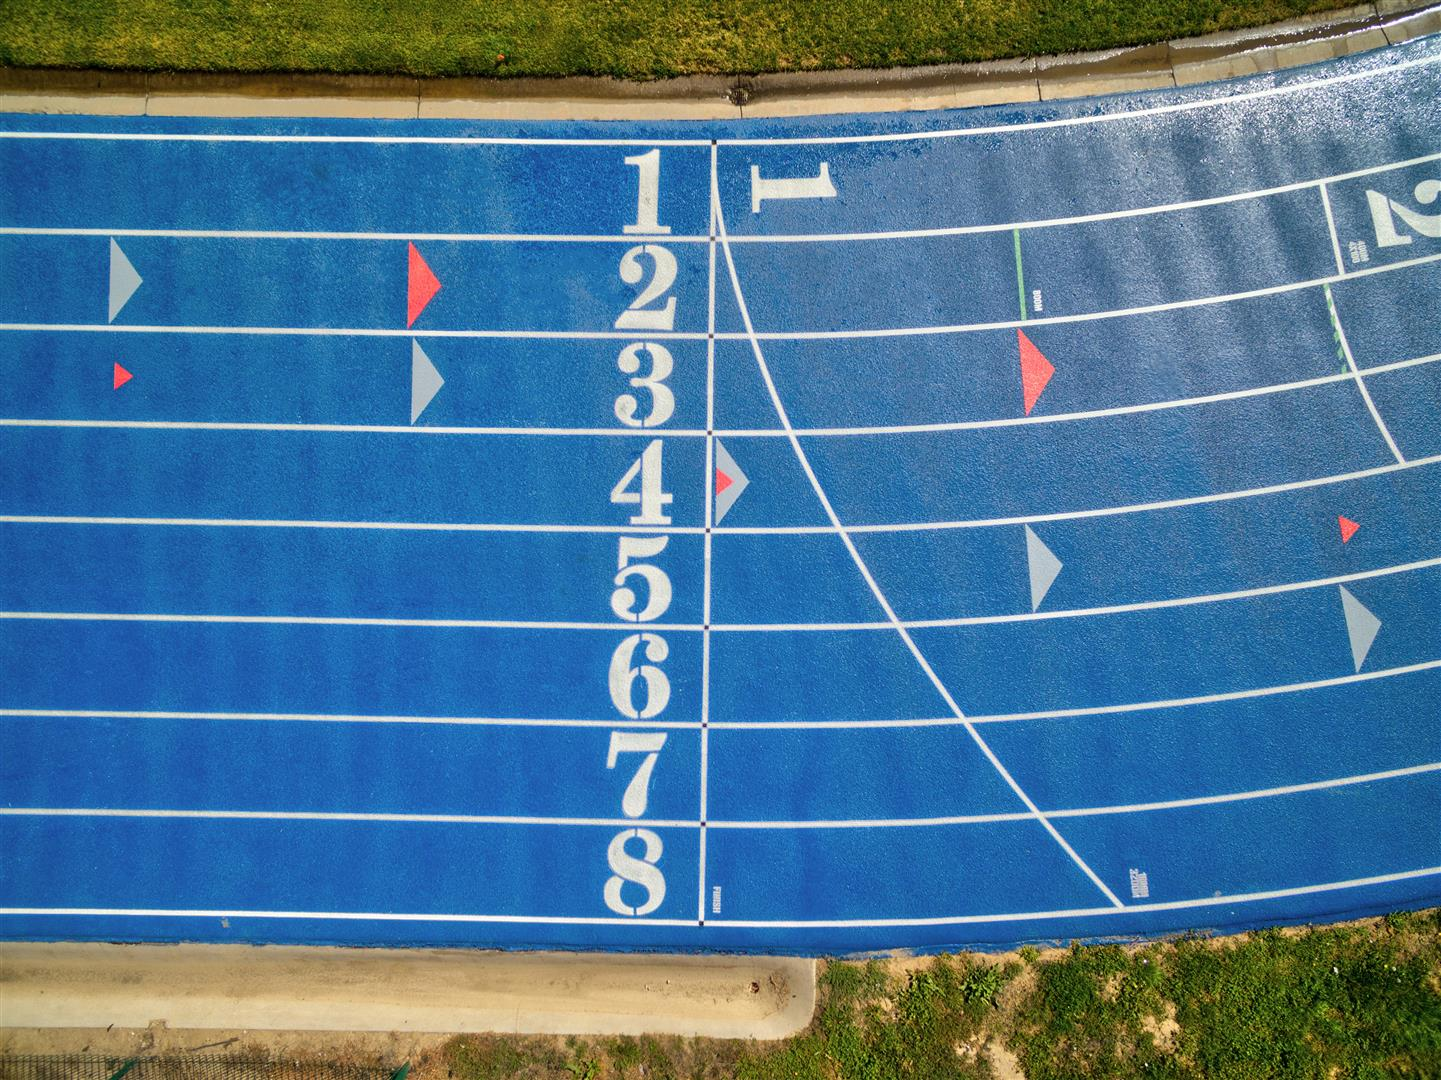 Image of a blue running track surface in Greeley, Colorado